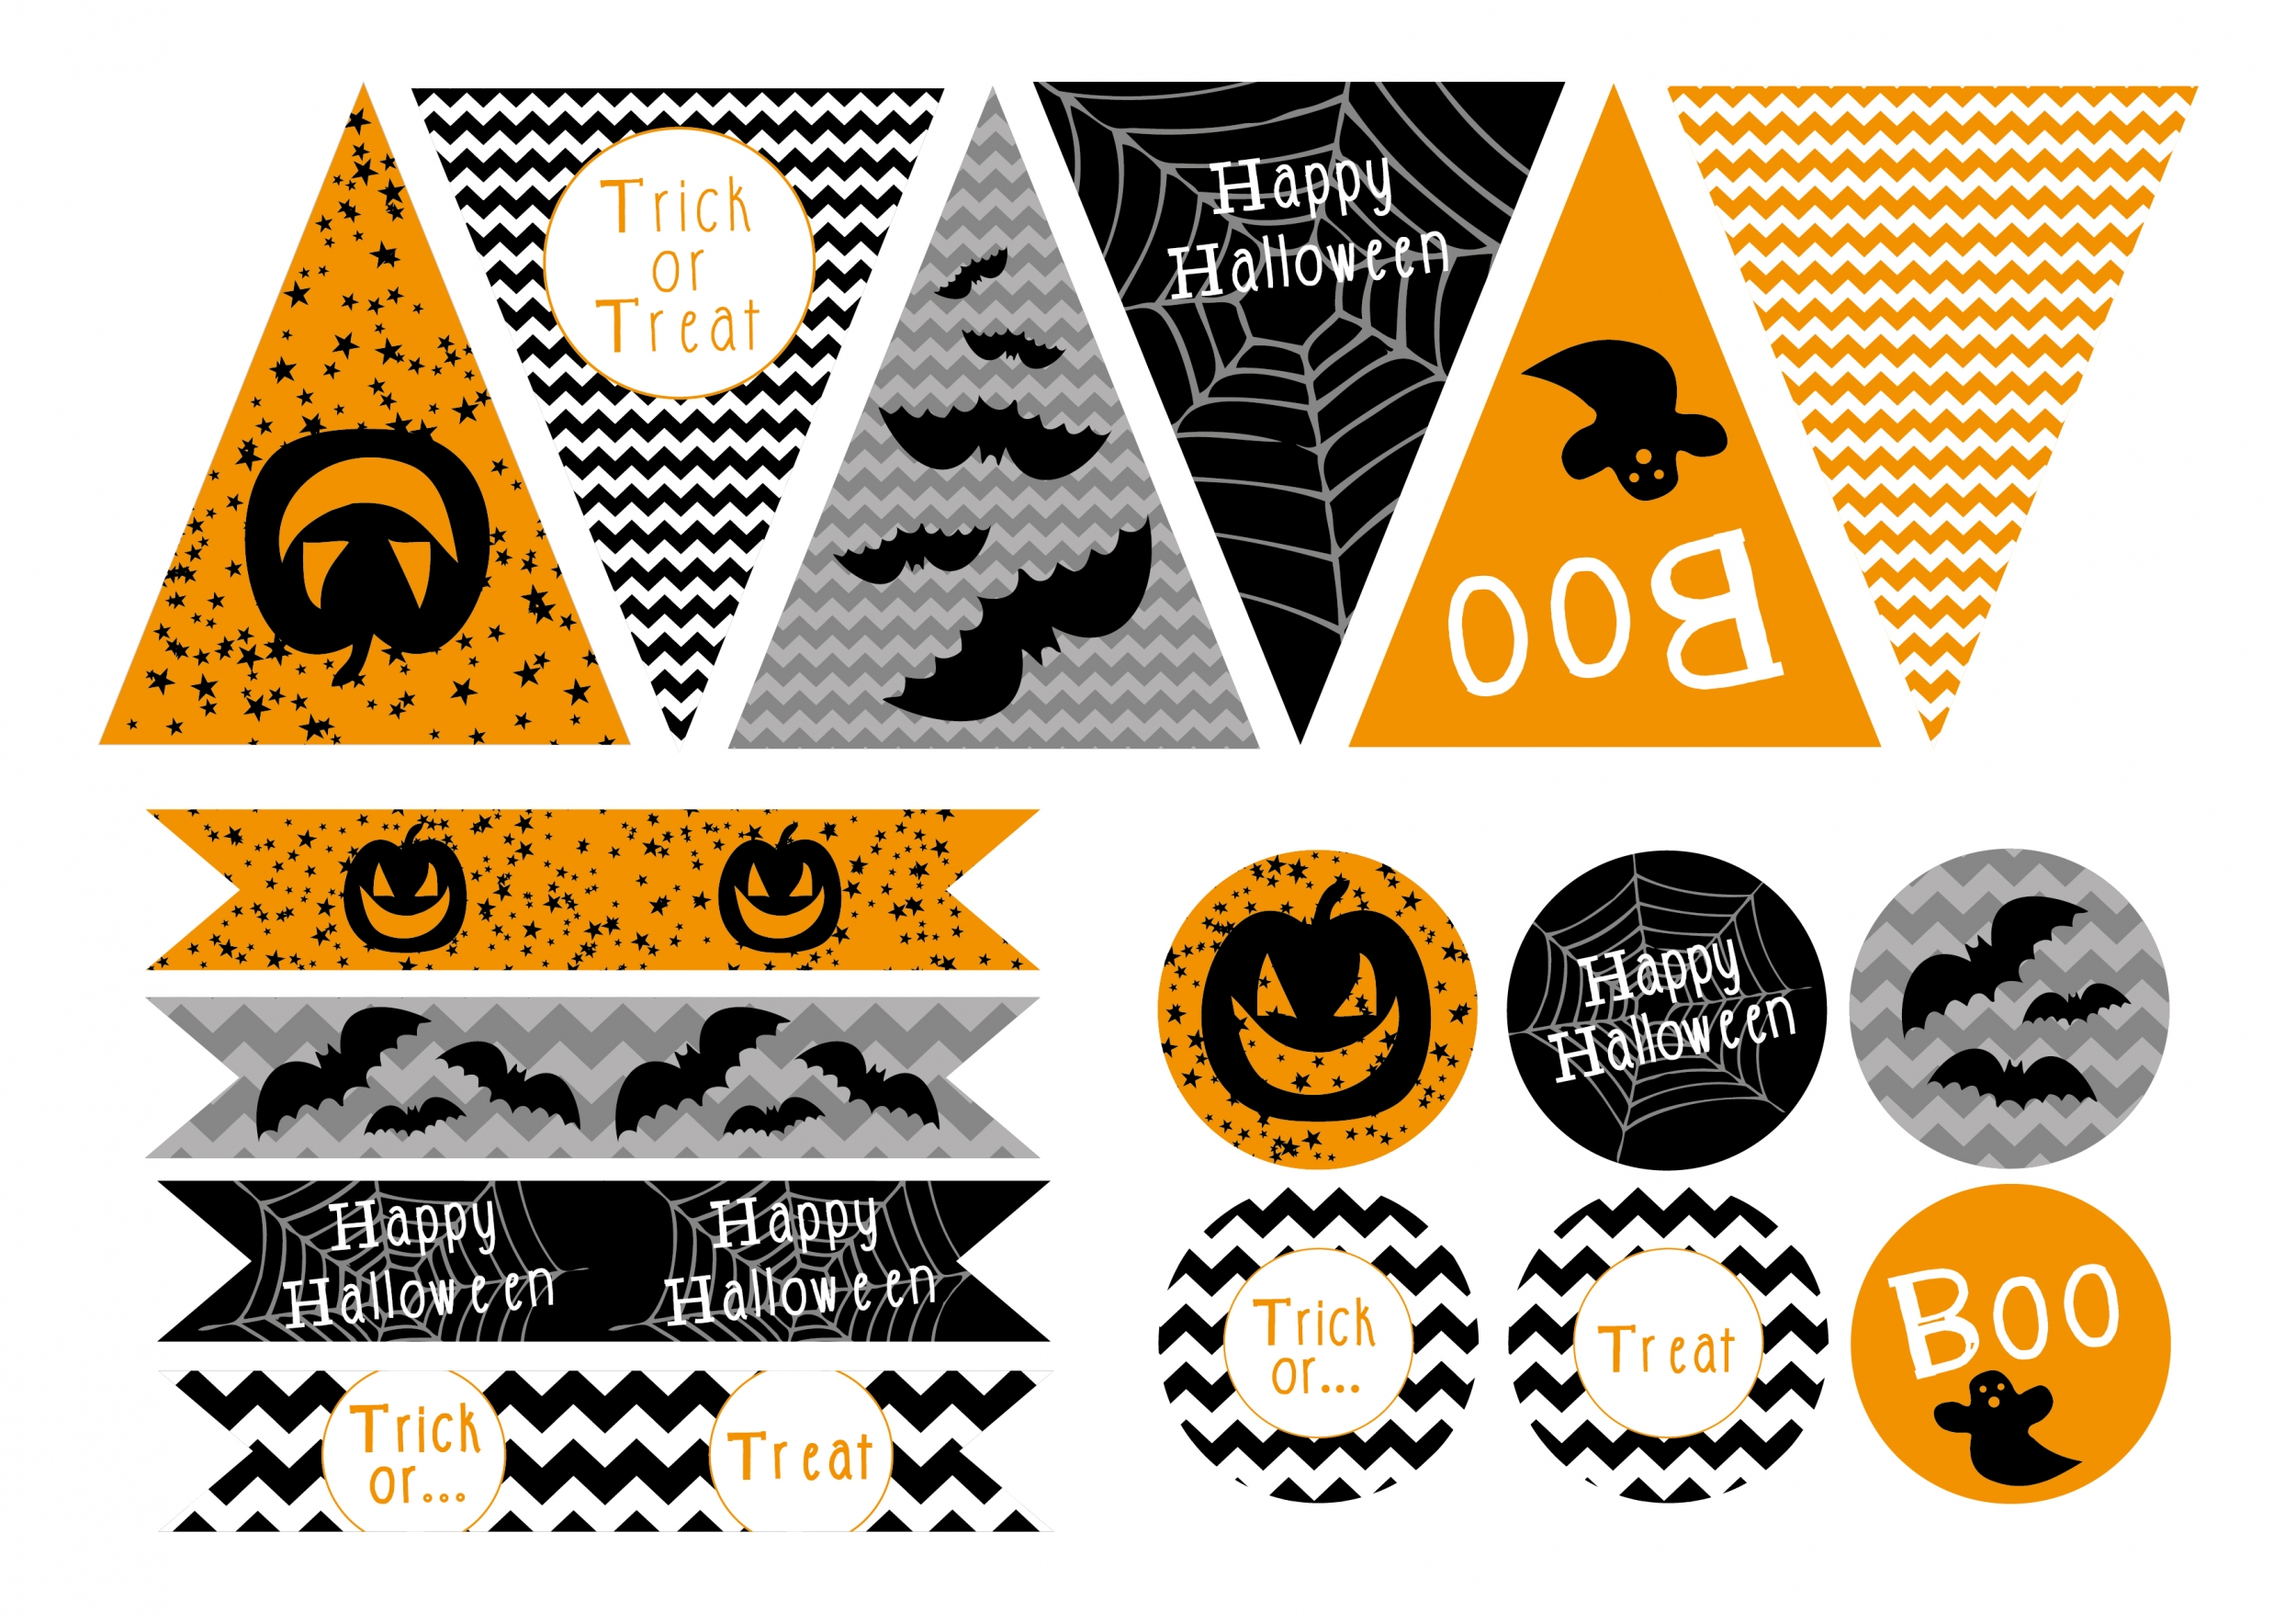 D co halloween a faire soi meme printable gratuit a imprimer - Deco de table halloween a faire soi meme ...